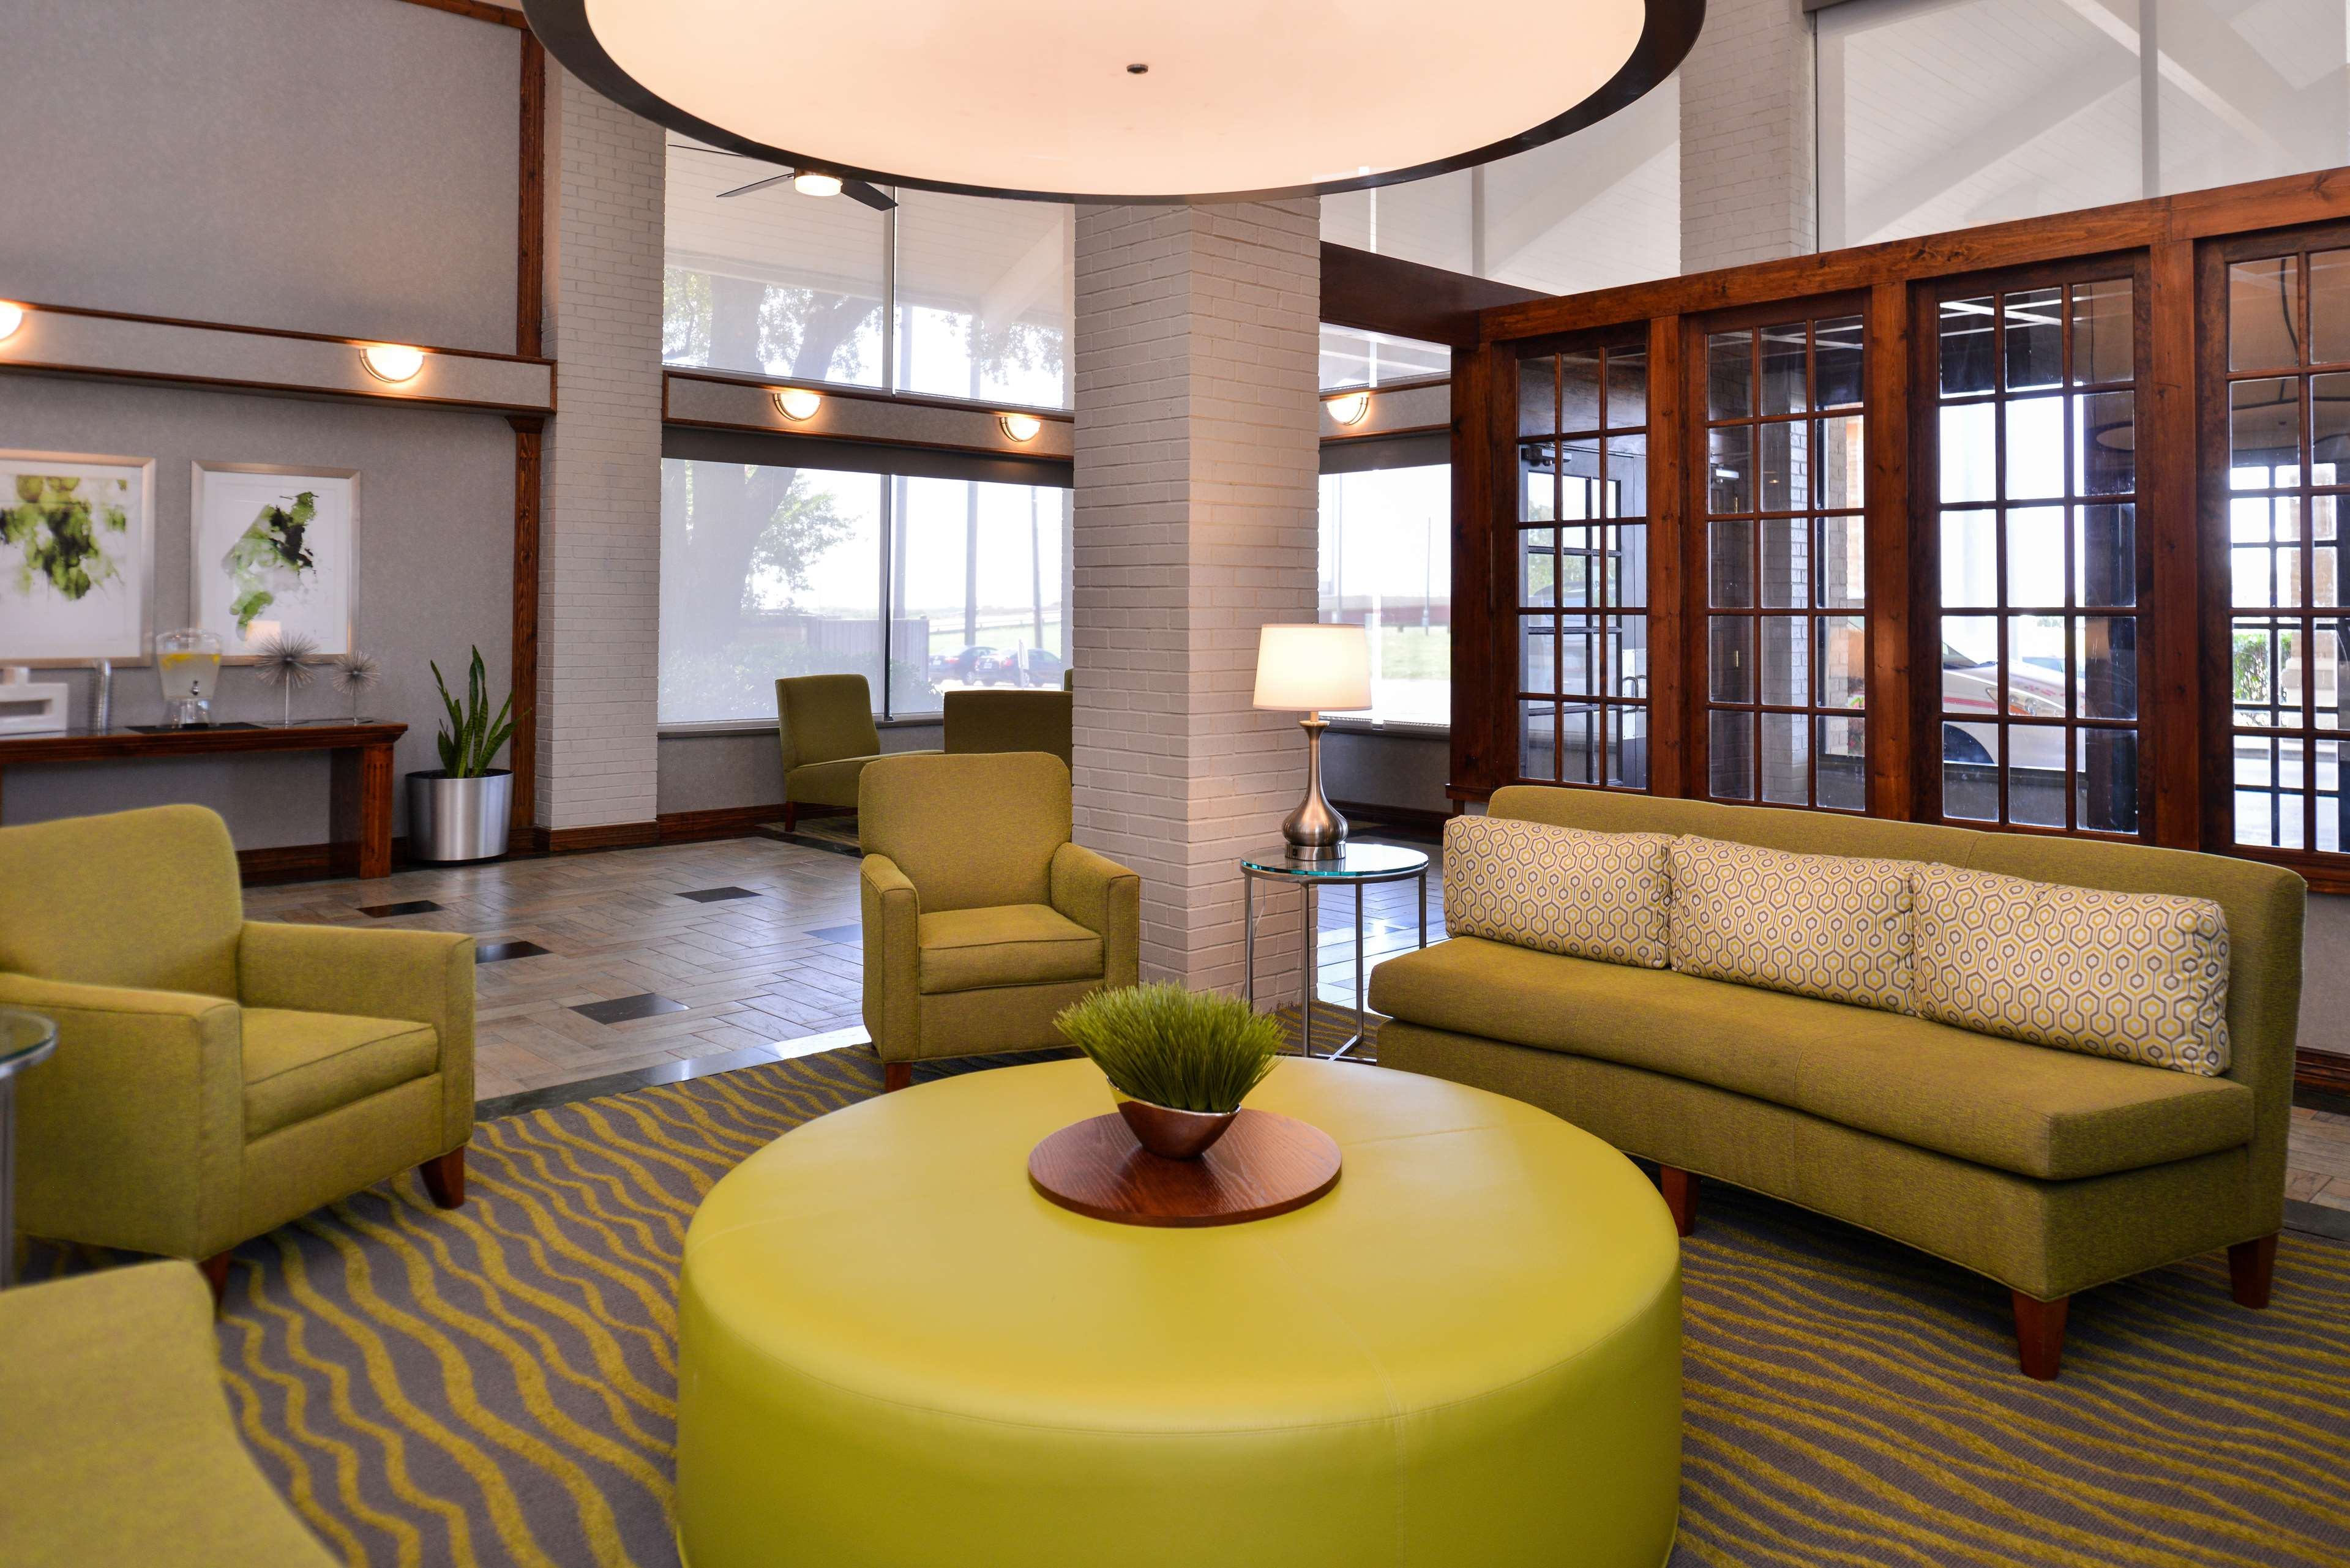 Best Western Irving Inn & Suites at DFW Airport image 3